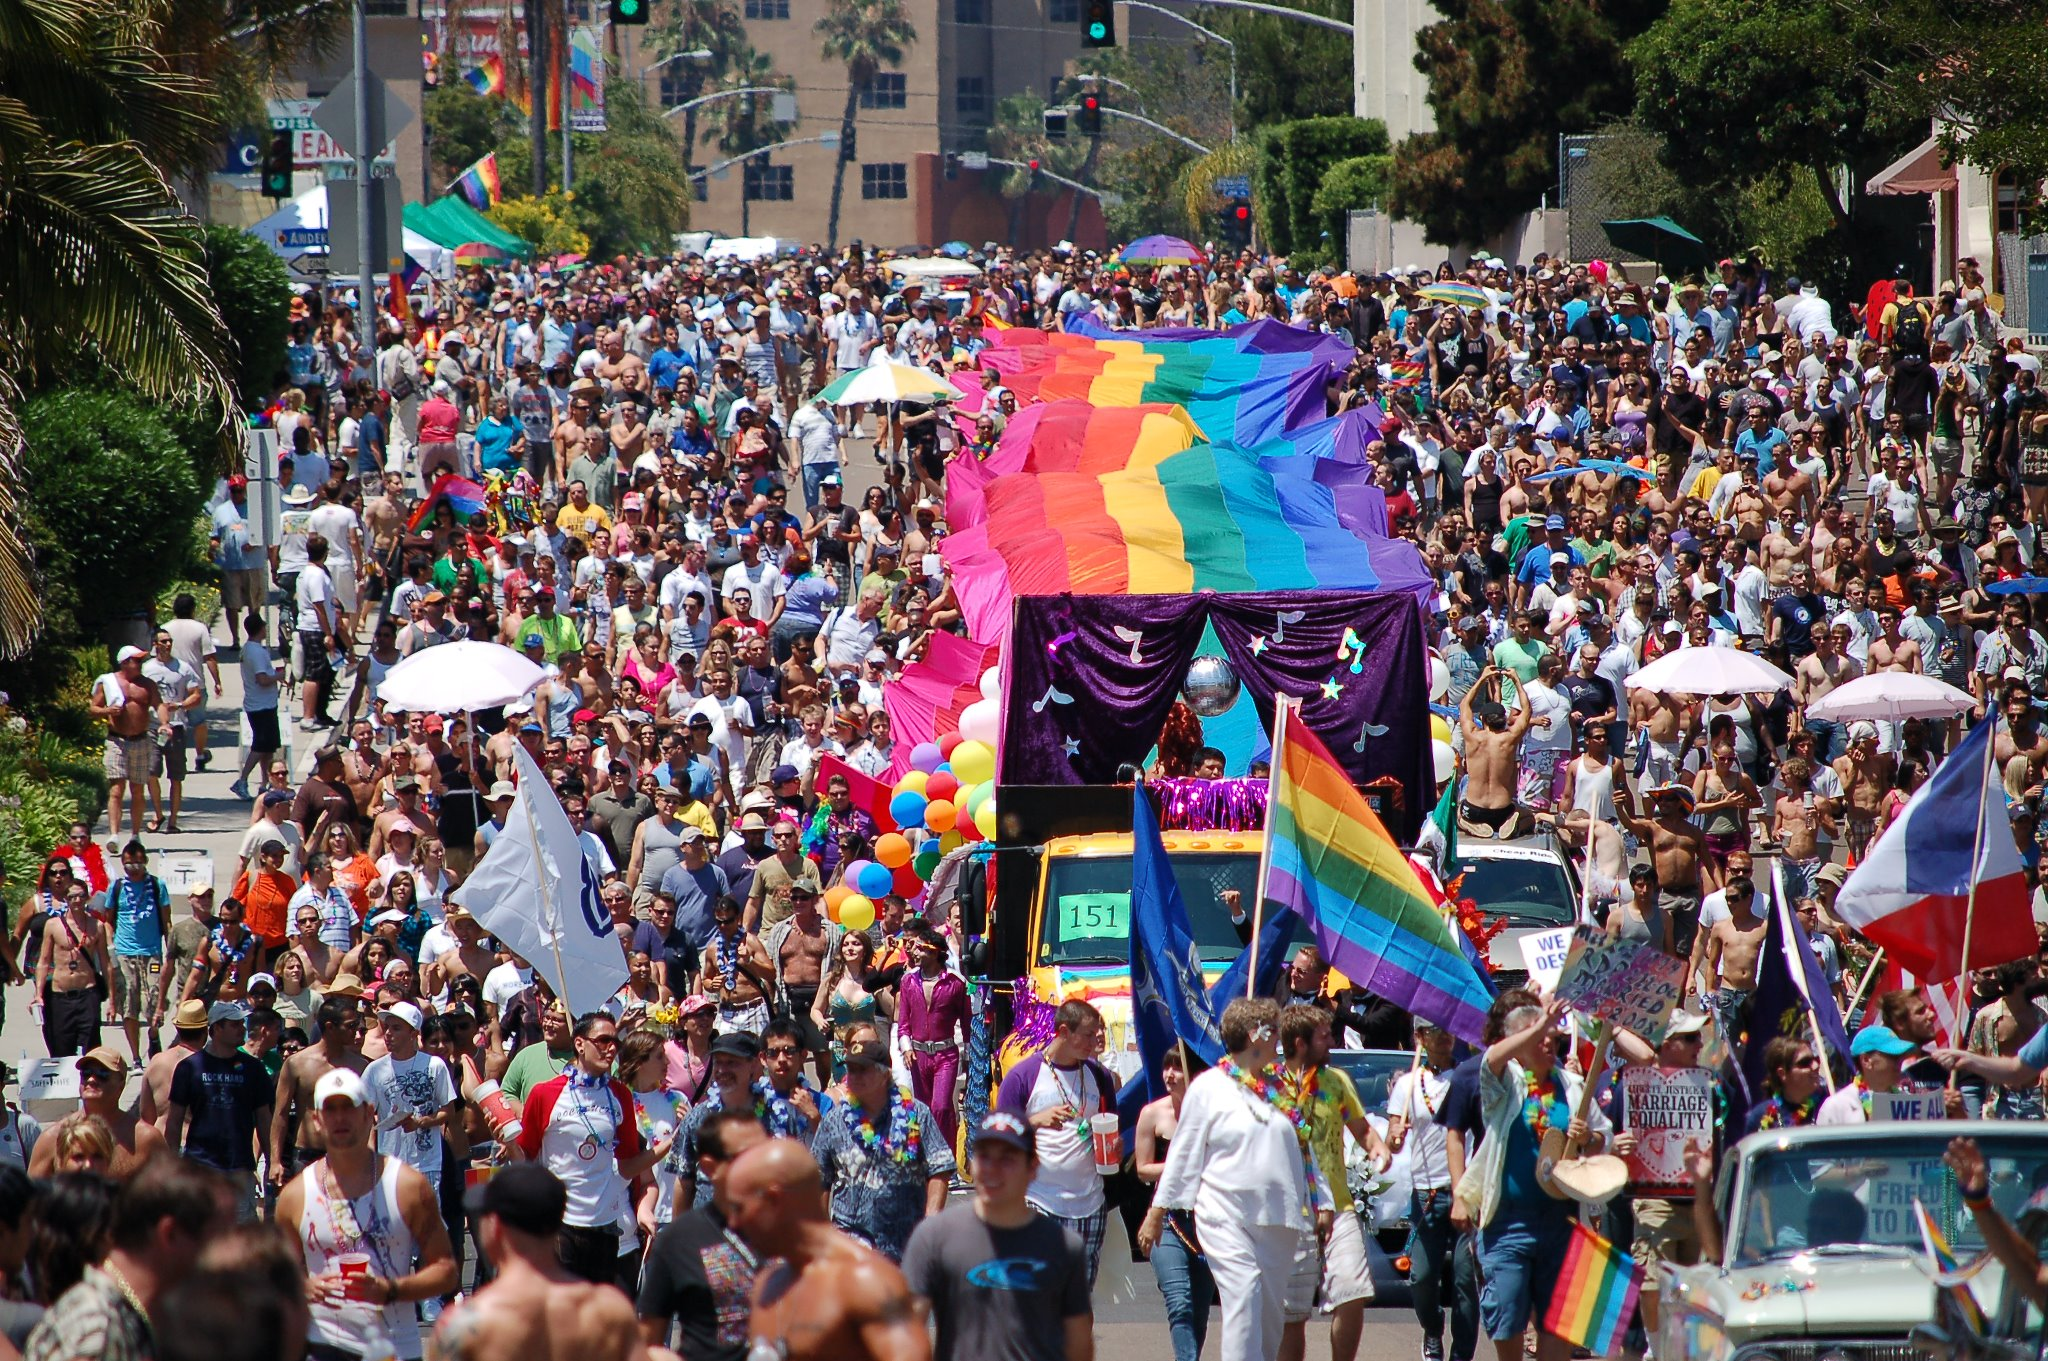 San Diego LGBT Pride Parade and Festival - Top Things to Do